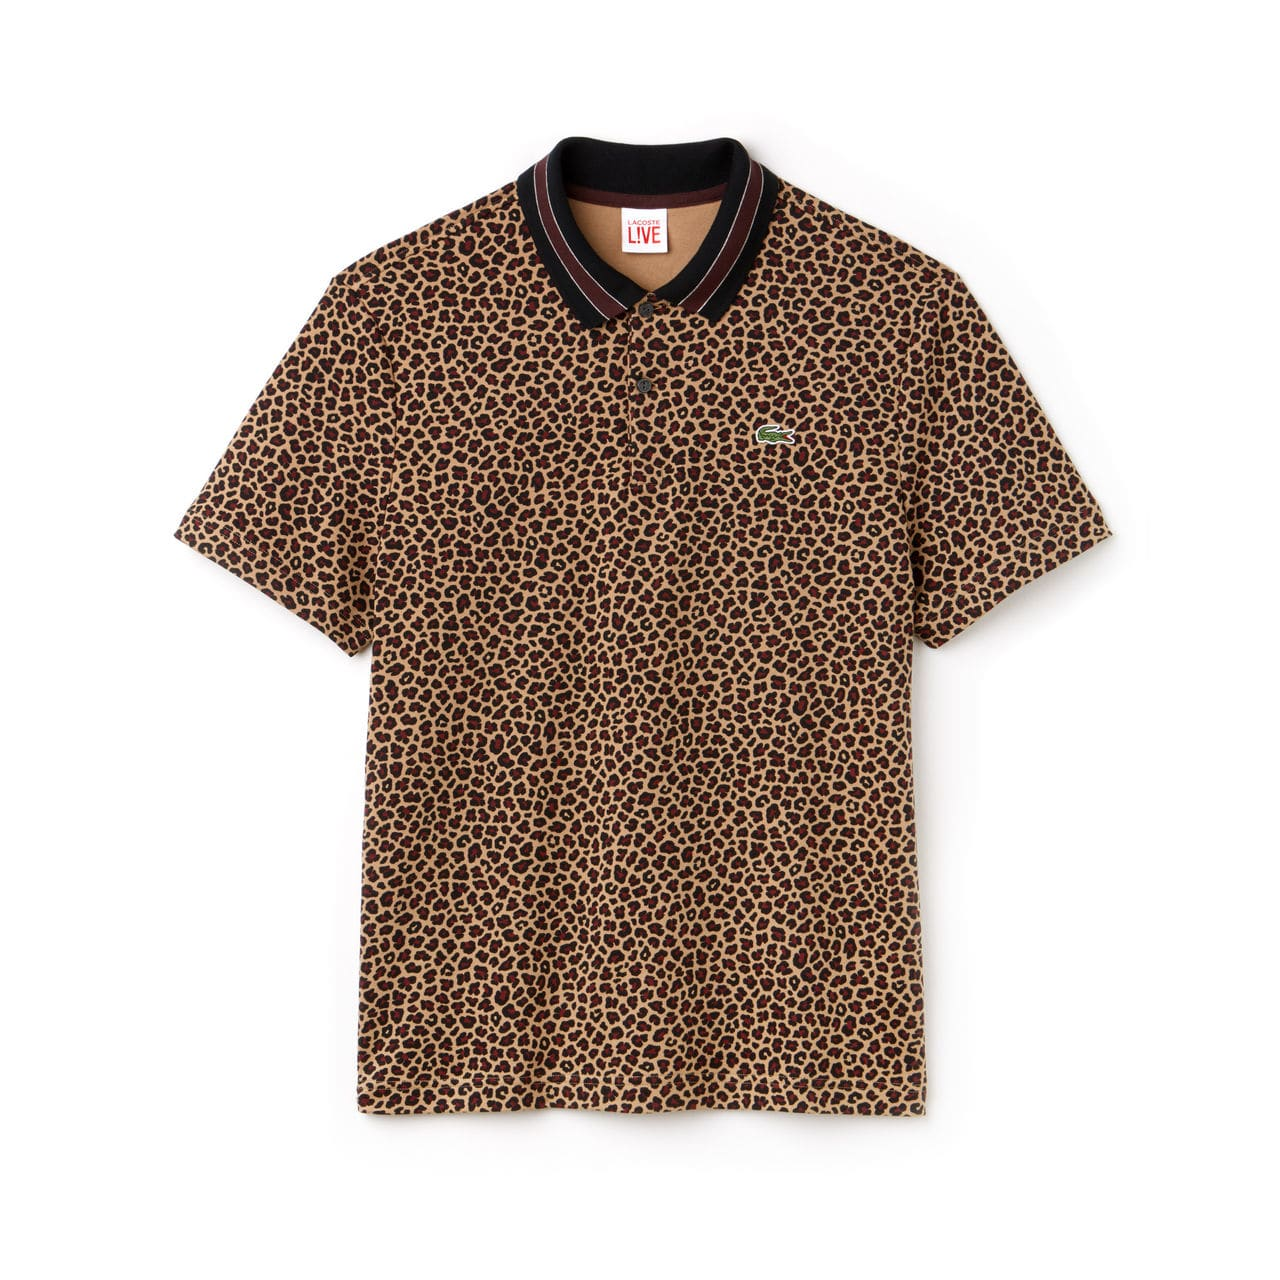 Lacoste Hommes LIVE Regular Fit Leopard Print Interlock Polo – LAVALIERE/MULTICO